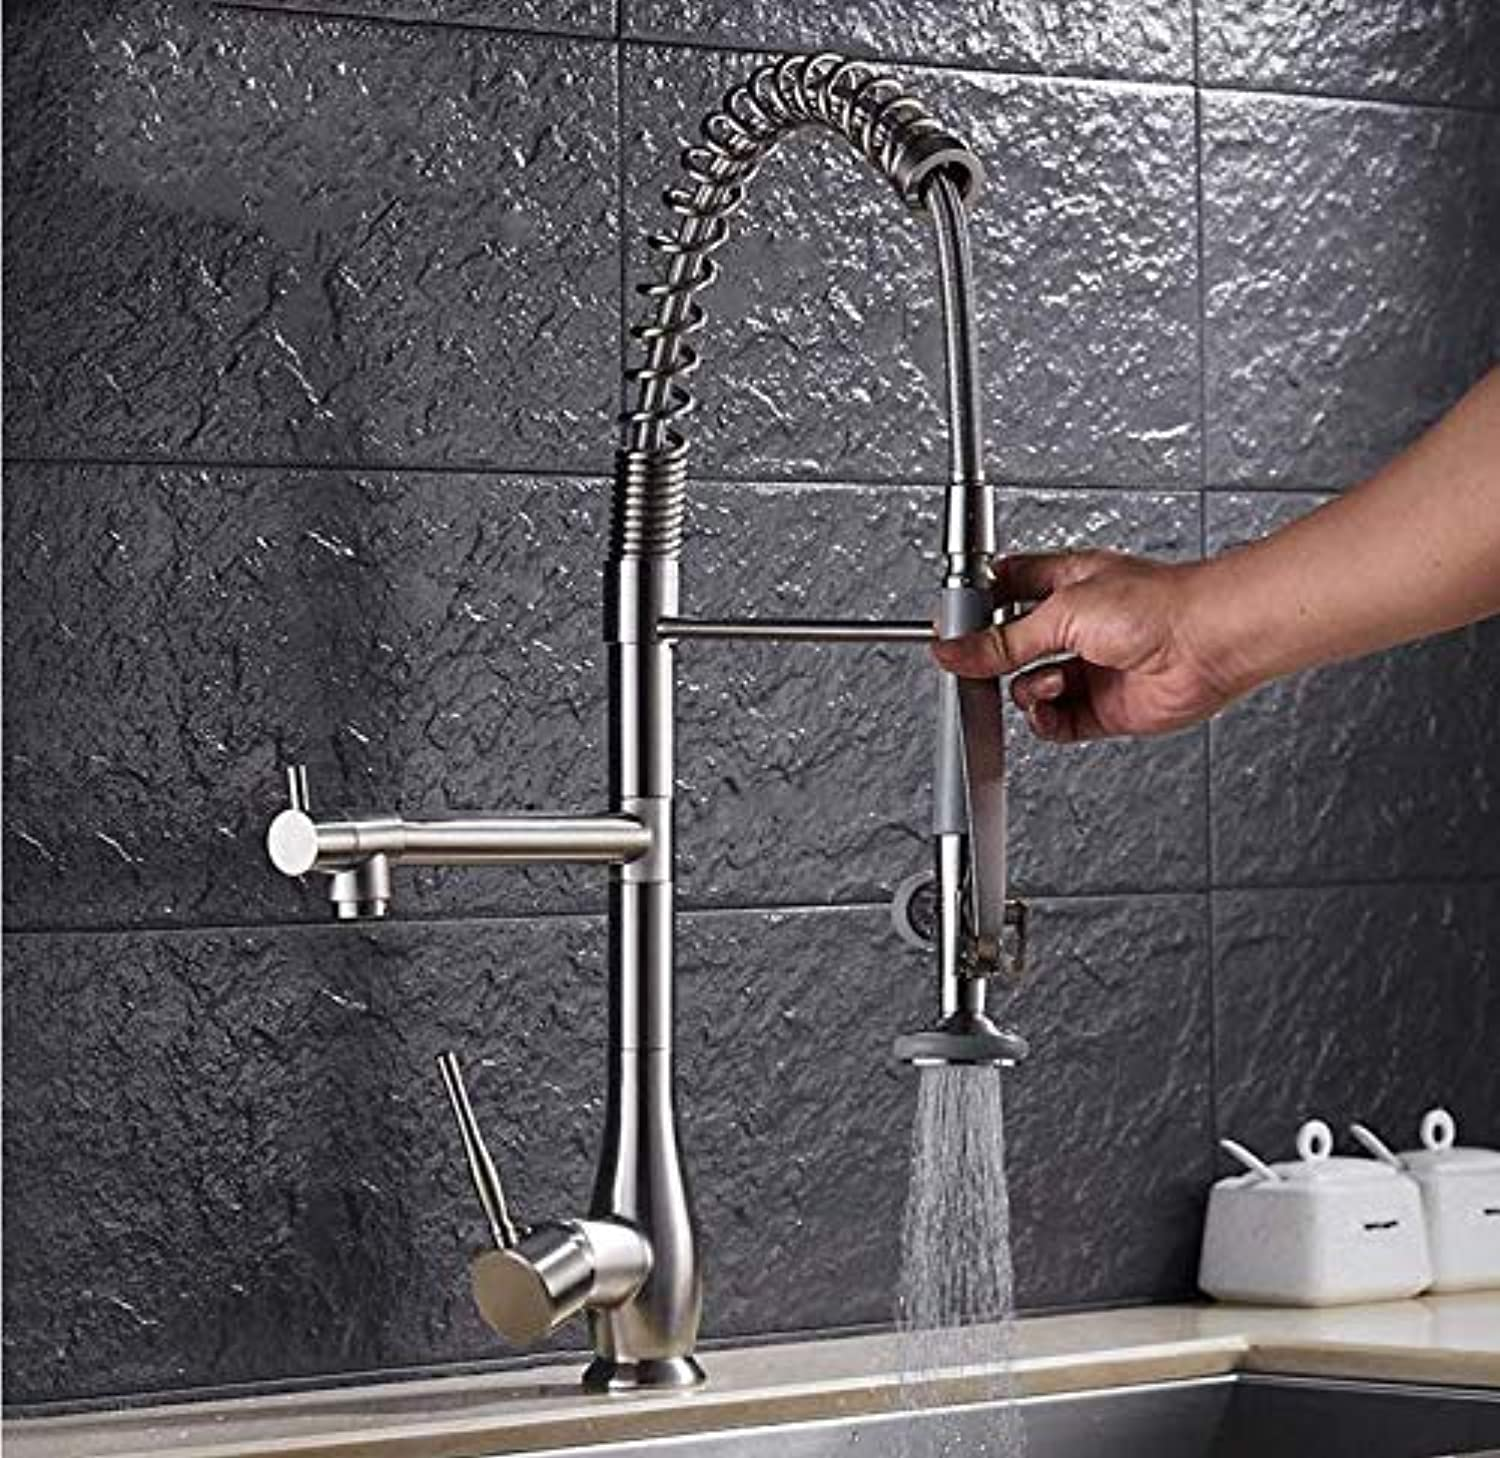 Water Tapfaucet Taps Hot and Cold Water Faucet Kitchen Pull Faucet redating Dual-Use Sink Hot and Cold